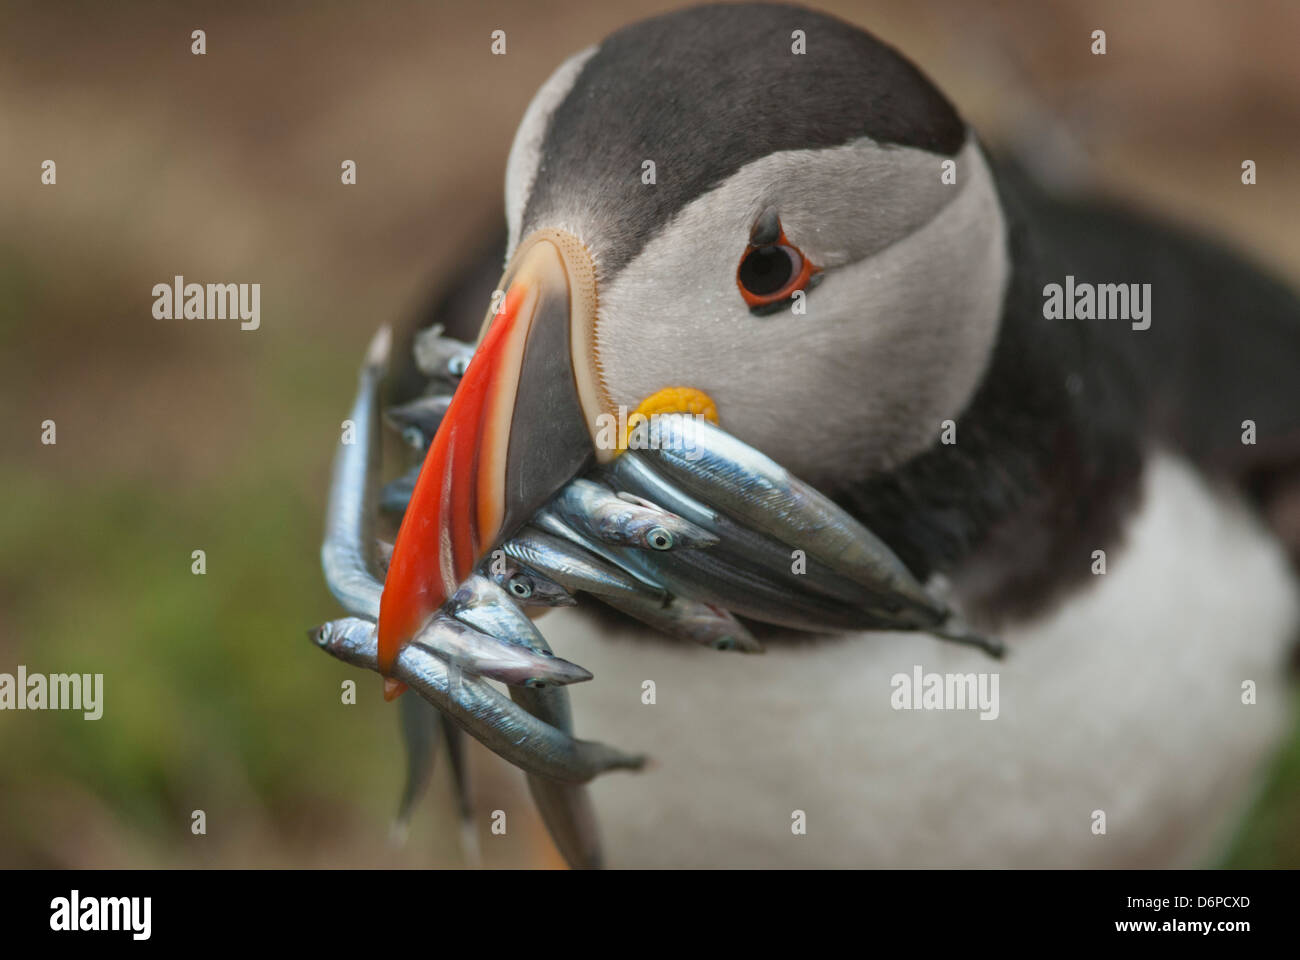 Puffin with sand eels in beak, Wales, United Kingdom, Europe - Stock Image